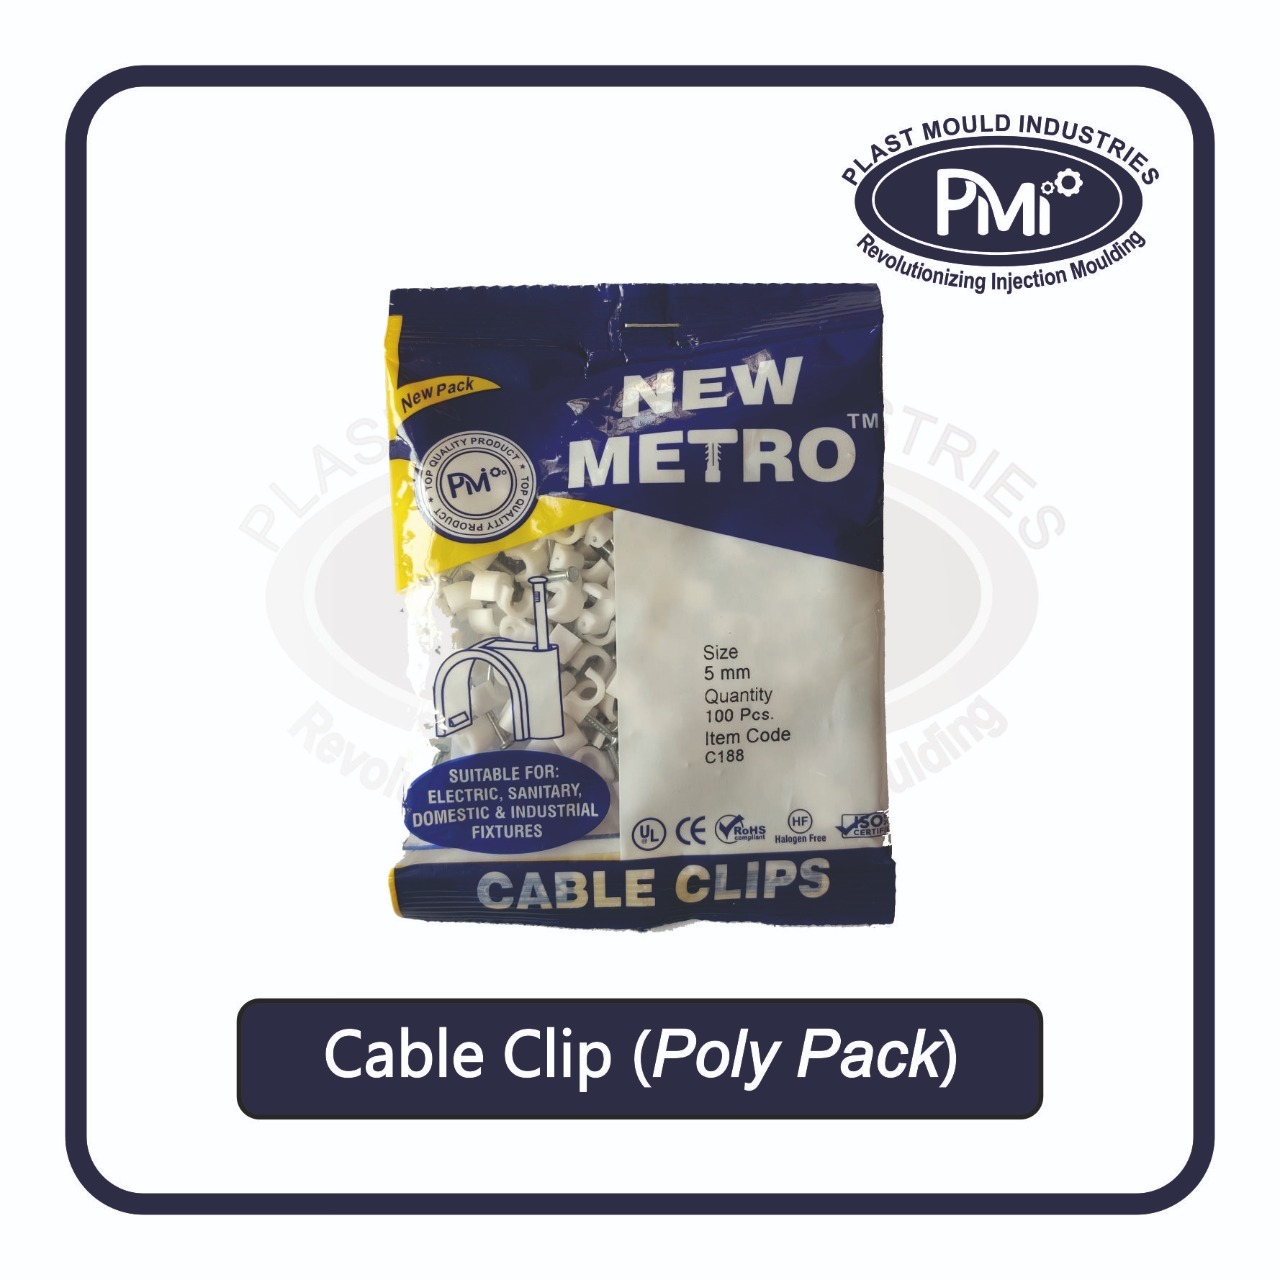 25 mm Cable Clip